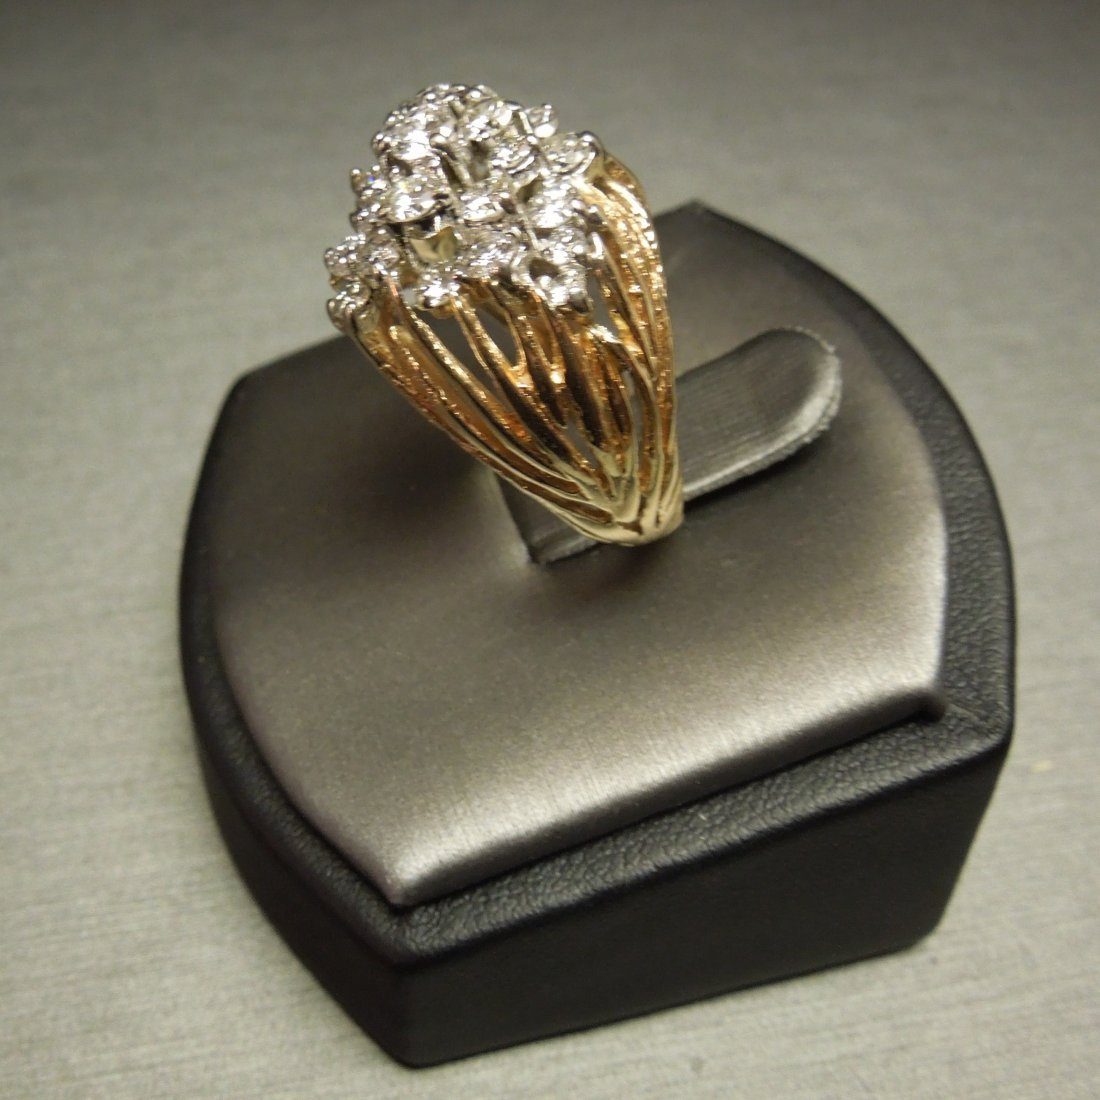 C 1970 14KT Pierced Flame Cluster Diamond Dome Ring - 4